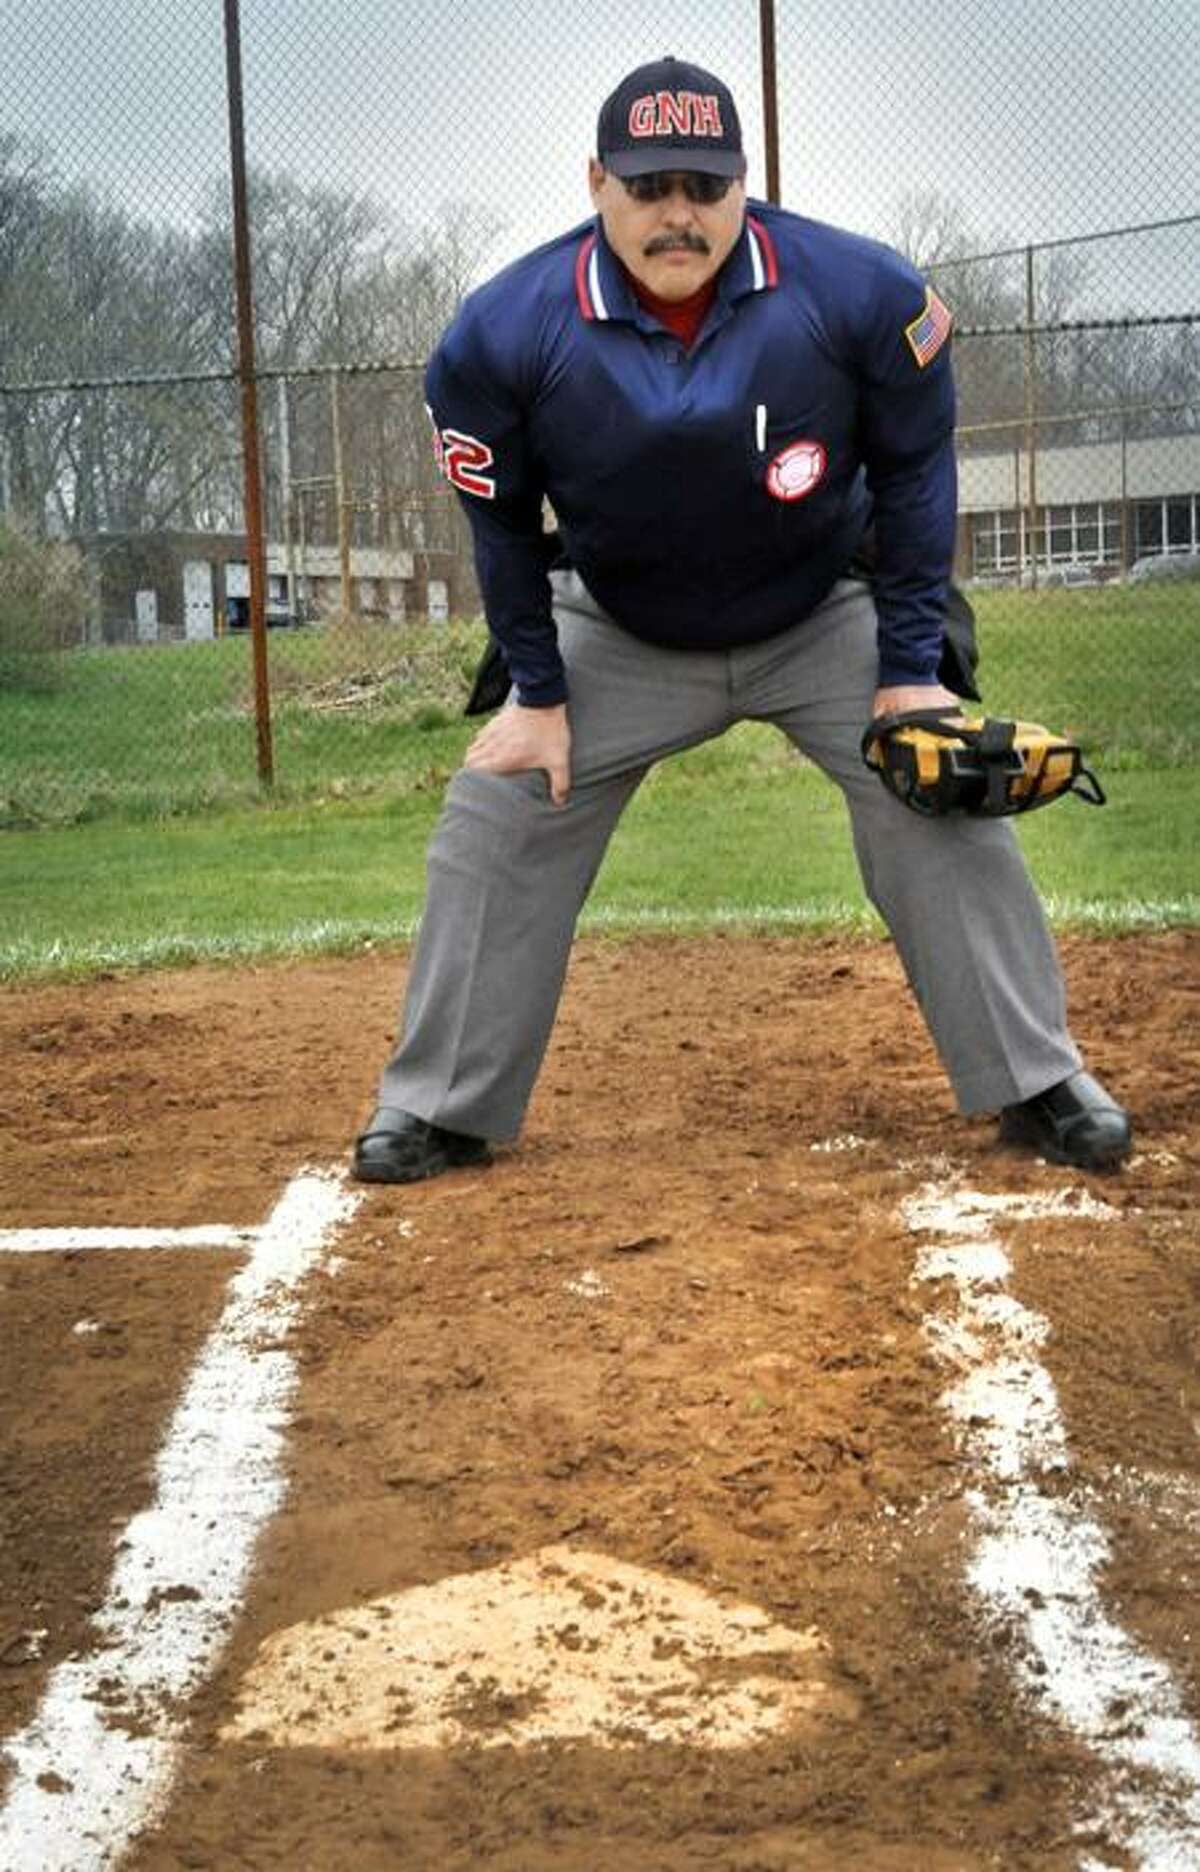 Fred Norman steps to the plate at the start of the Platt Tech game. Melanie Stengel/Register